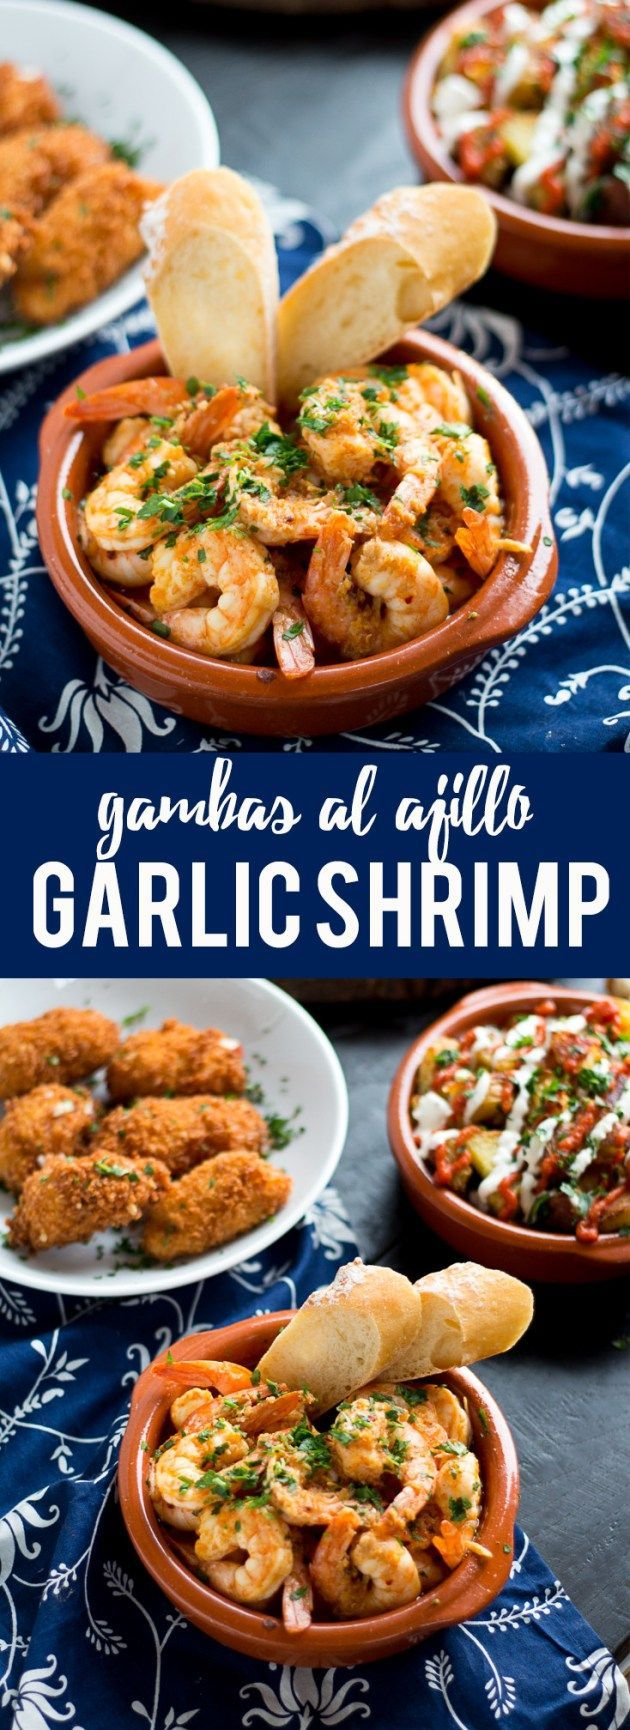 Garlic Shrimp (Gambas al Ajillo) are a classic Spanish tapas dish. Succulent shrimp in a spicy garlicky sauce that you will need to dip your bread into!: